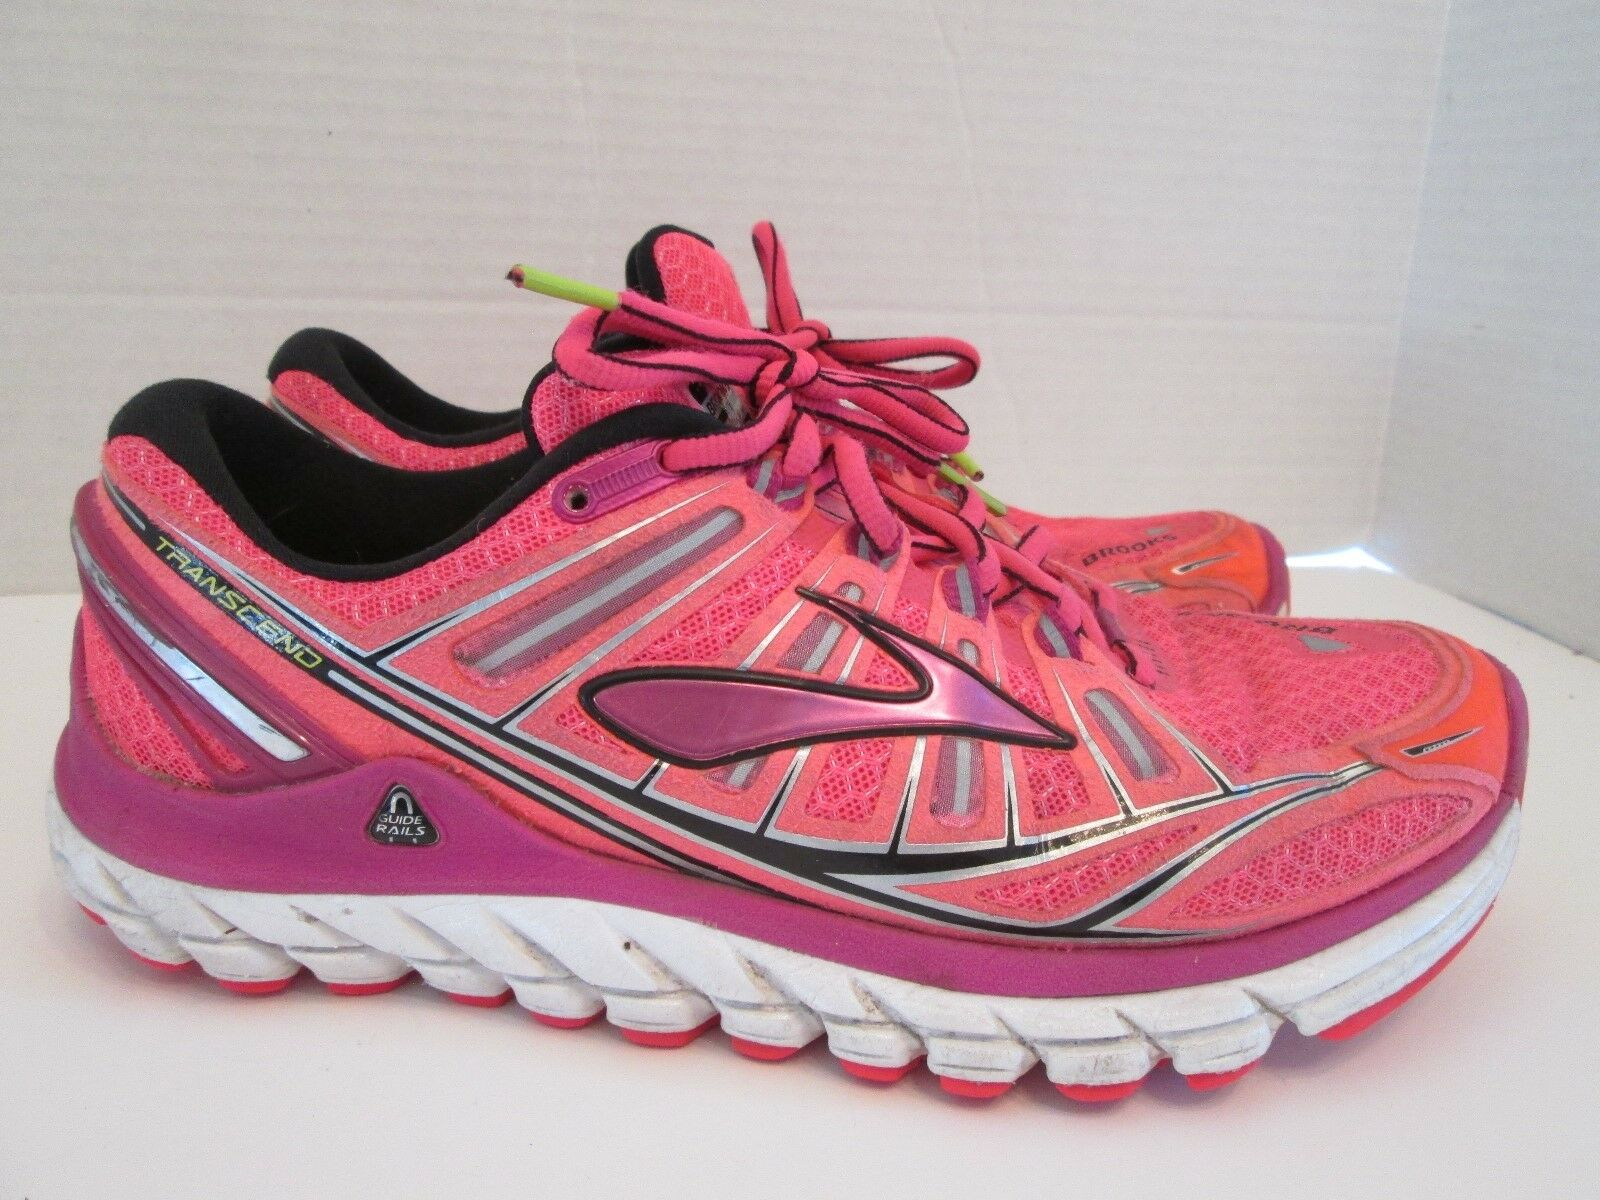 BROOKS TRANSCEND Pink Running Athletic Sneaker Shoes Women's Size 7